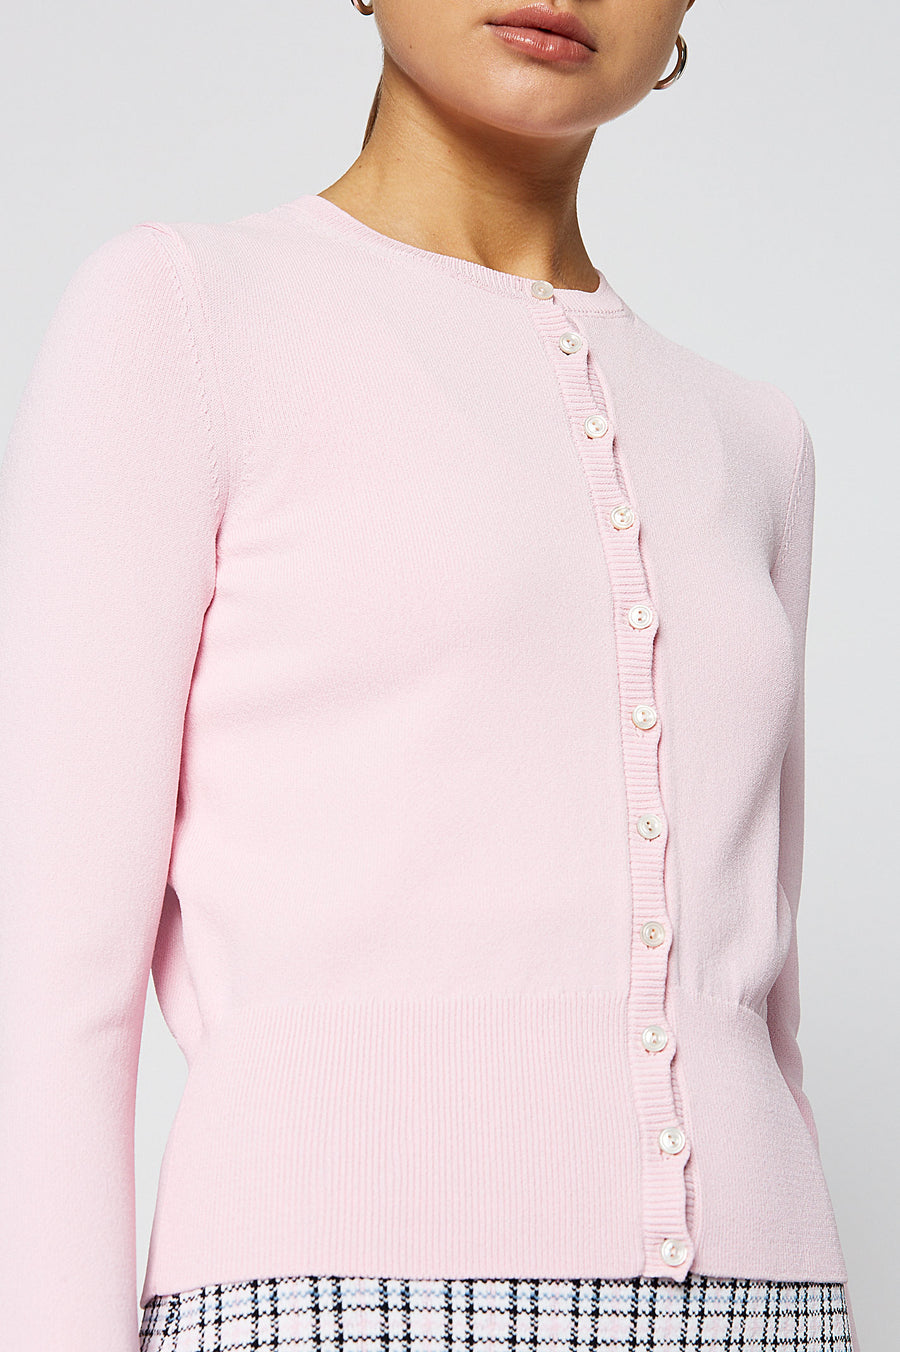 CREPE KNIT CARDIGAN, PALE PINK color